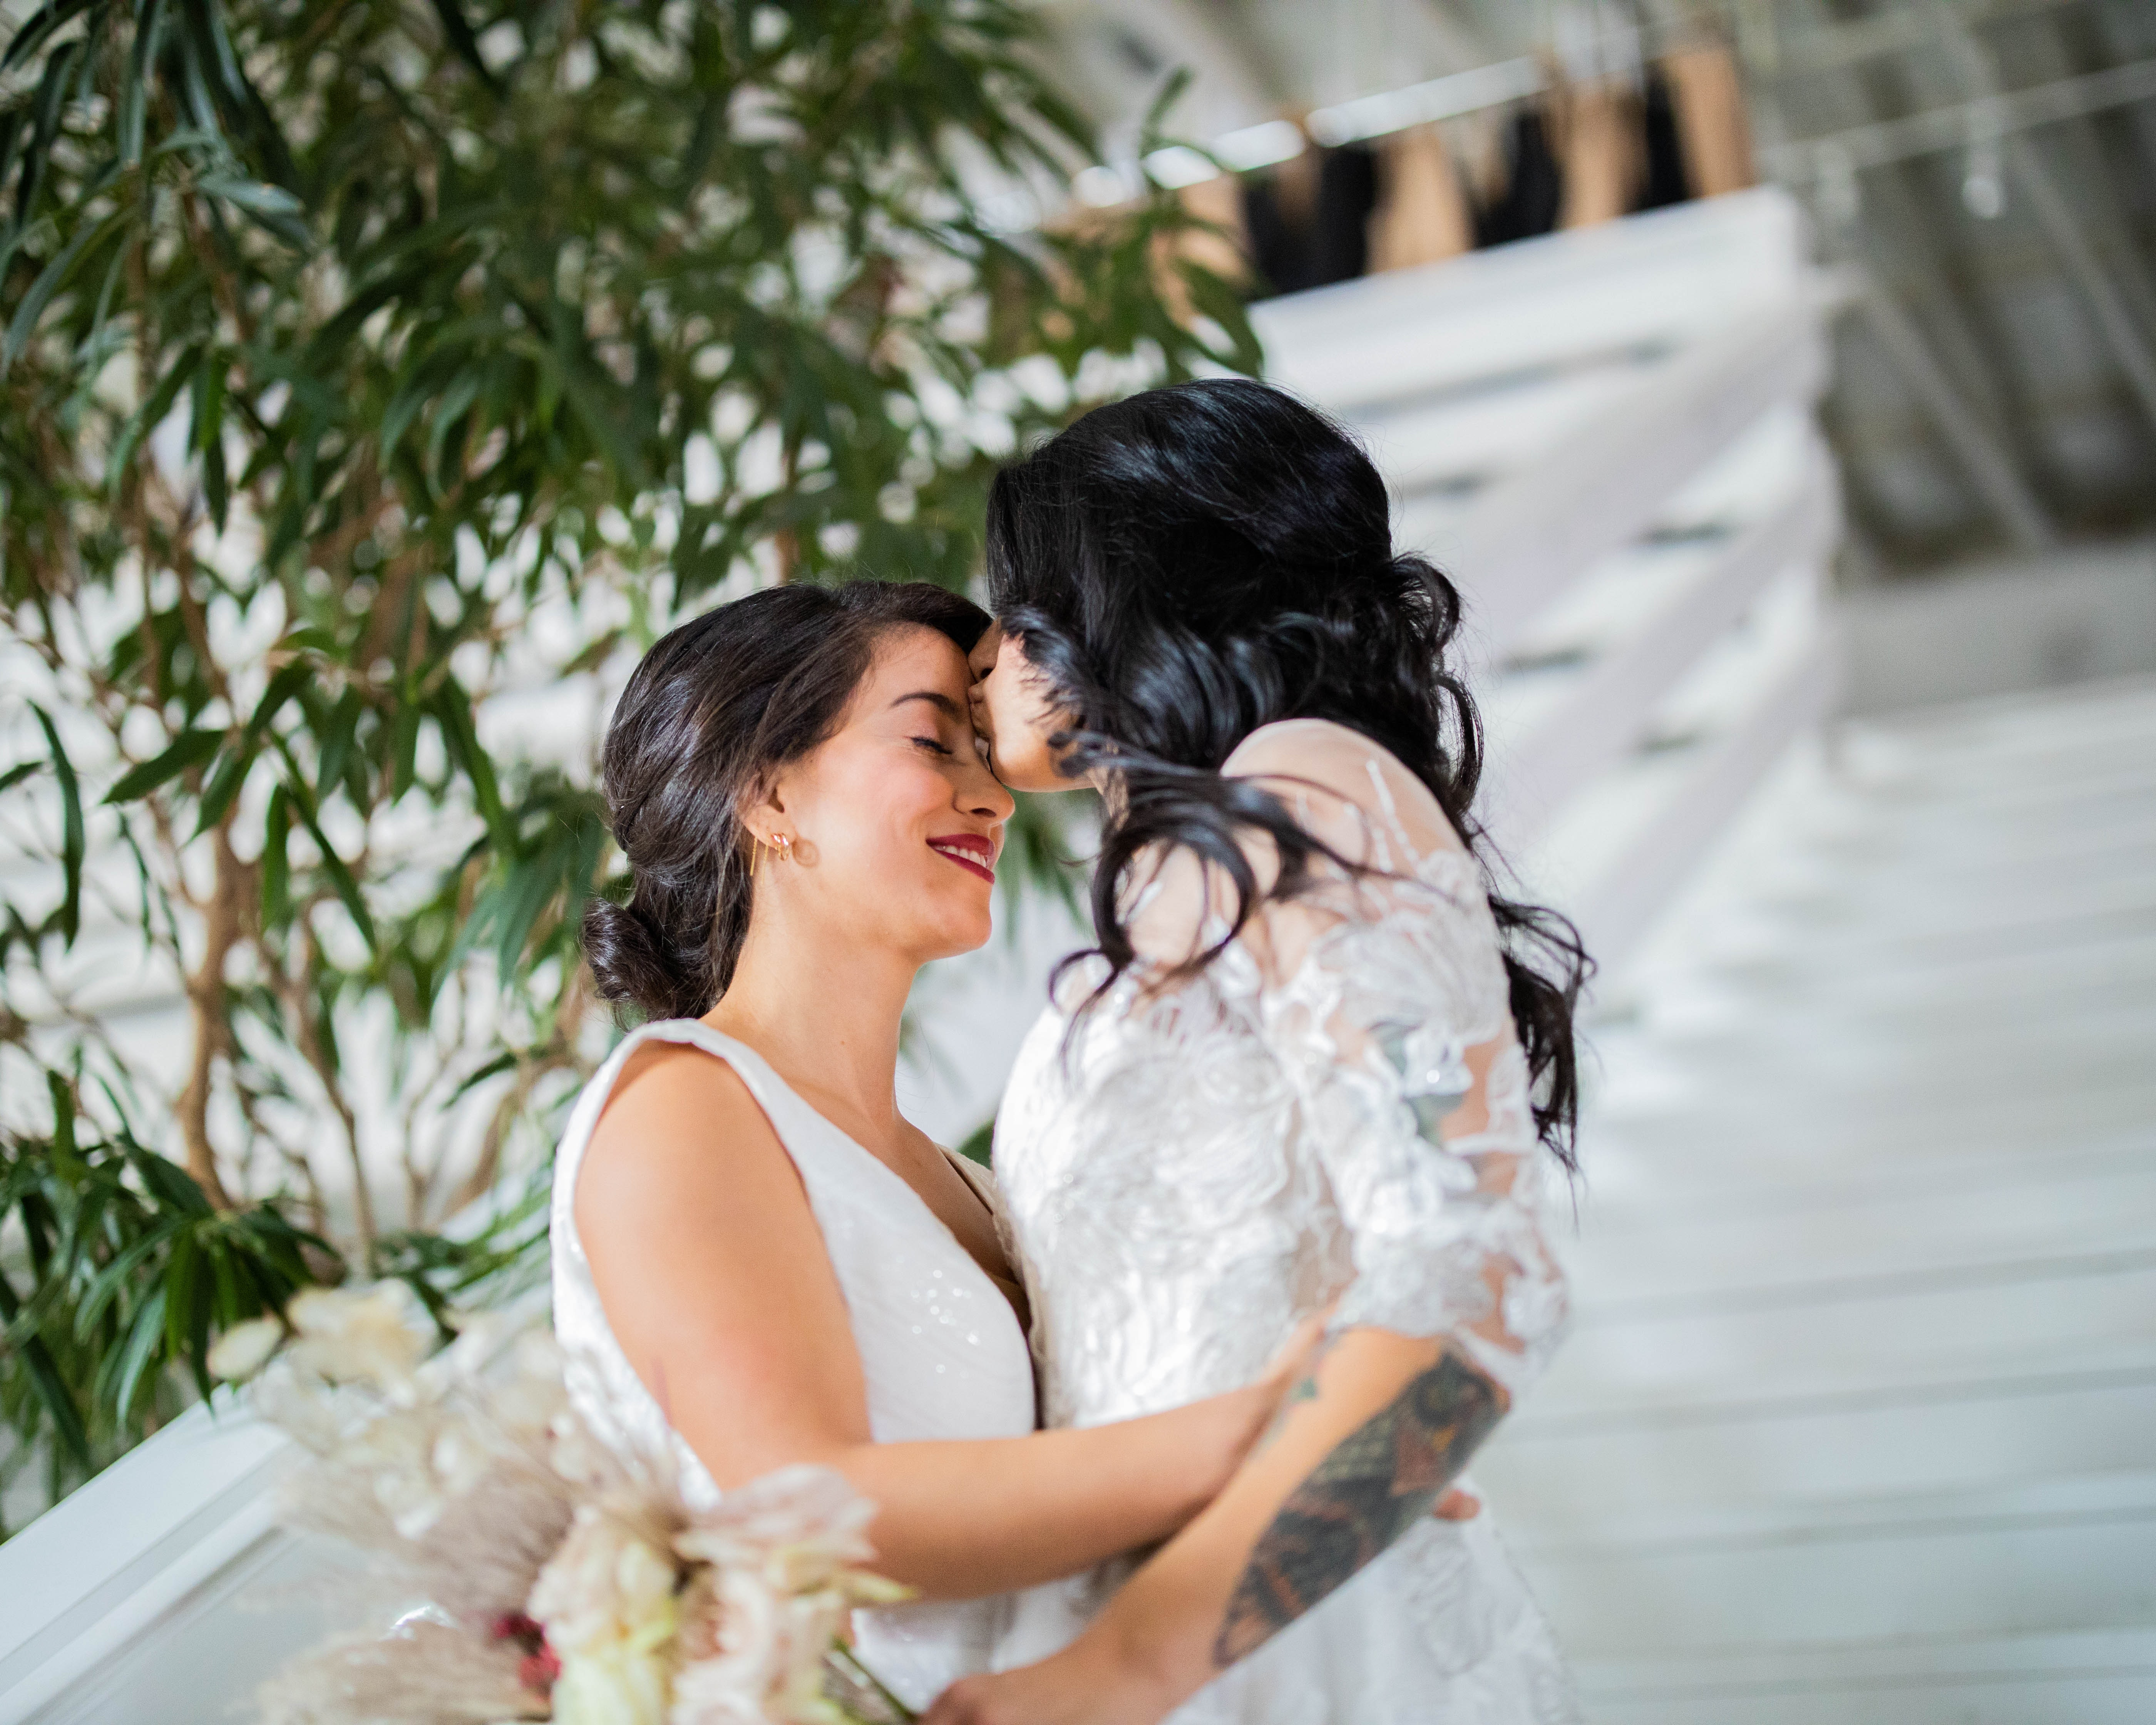 woman-in-white-floral-dress-kissing-woma